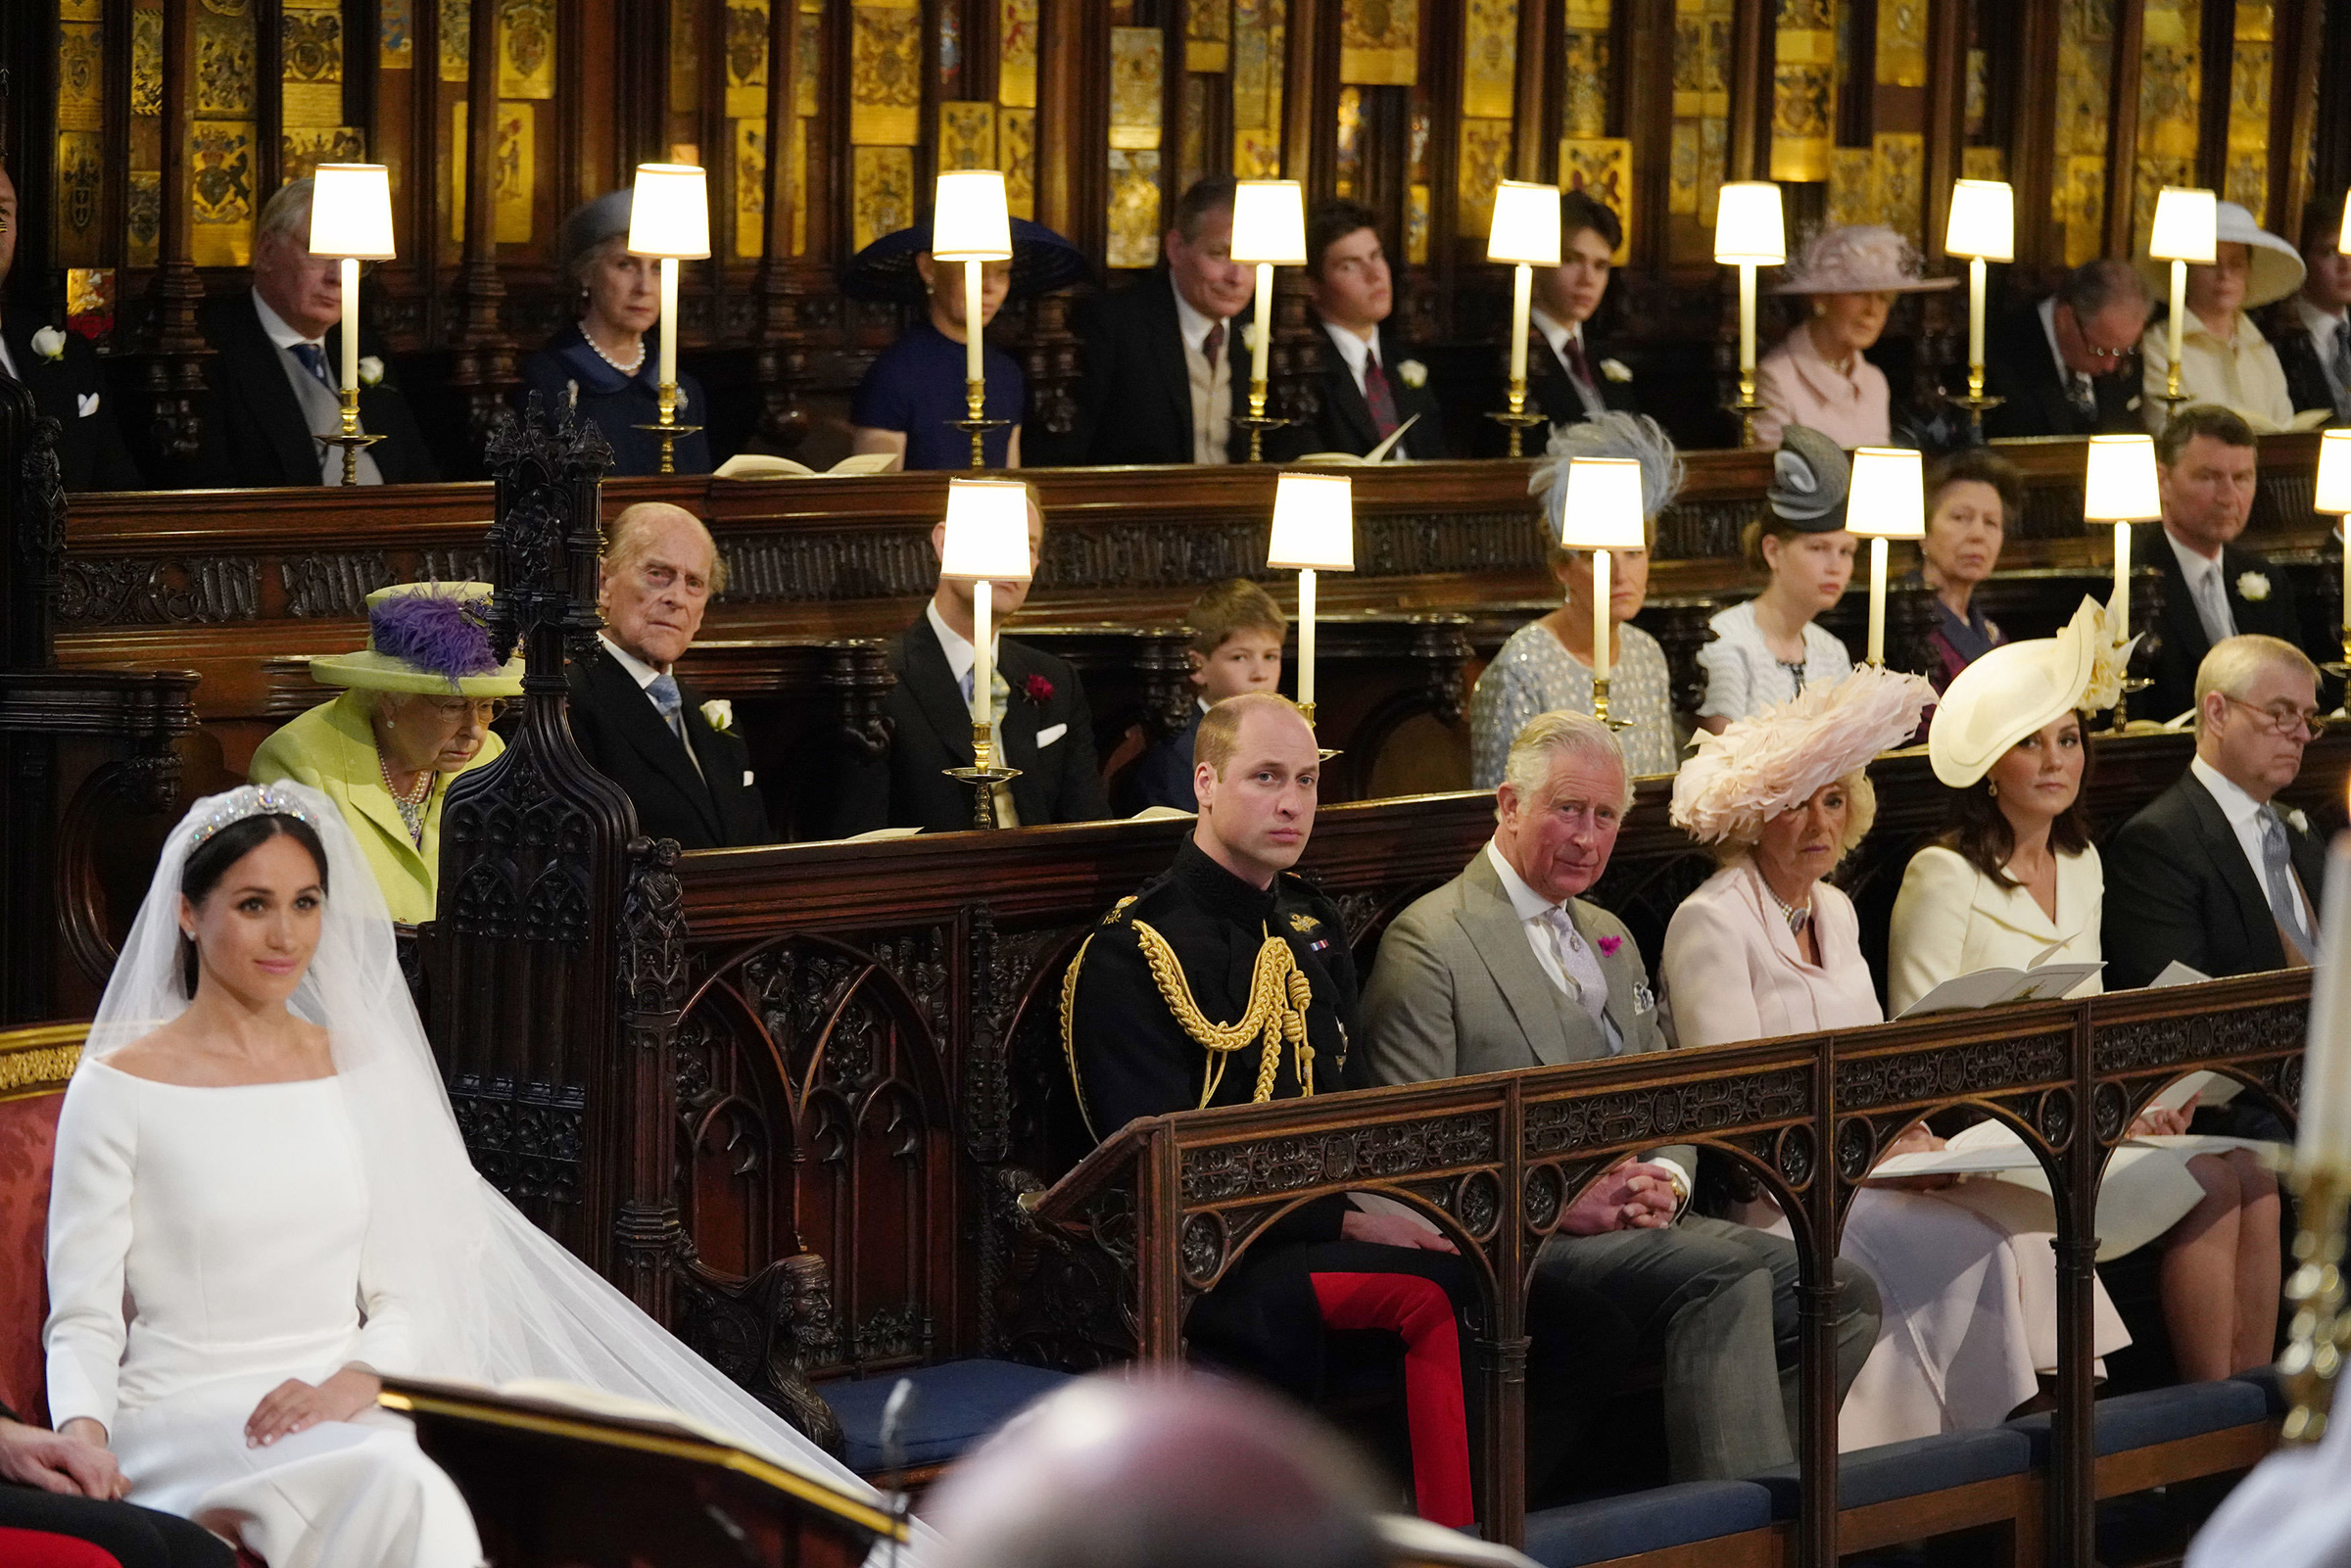 Prince Philip, Duke of Edinburgh, attends the wedding of Meghan, Duchess of Sussex, and Prince Harry in St George's Chapel, Windsor Castle on May 19, 2018.